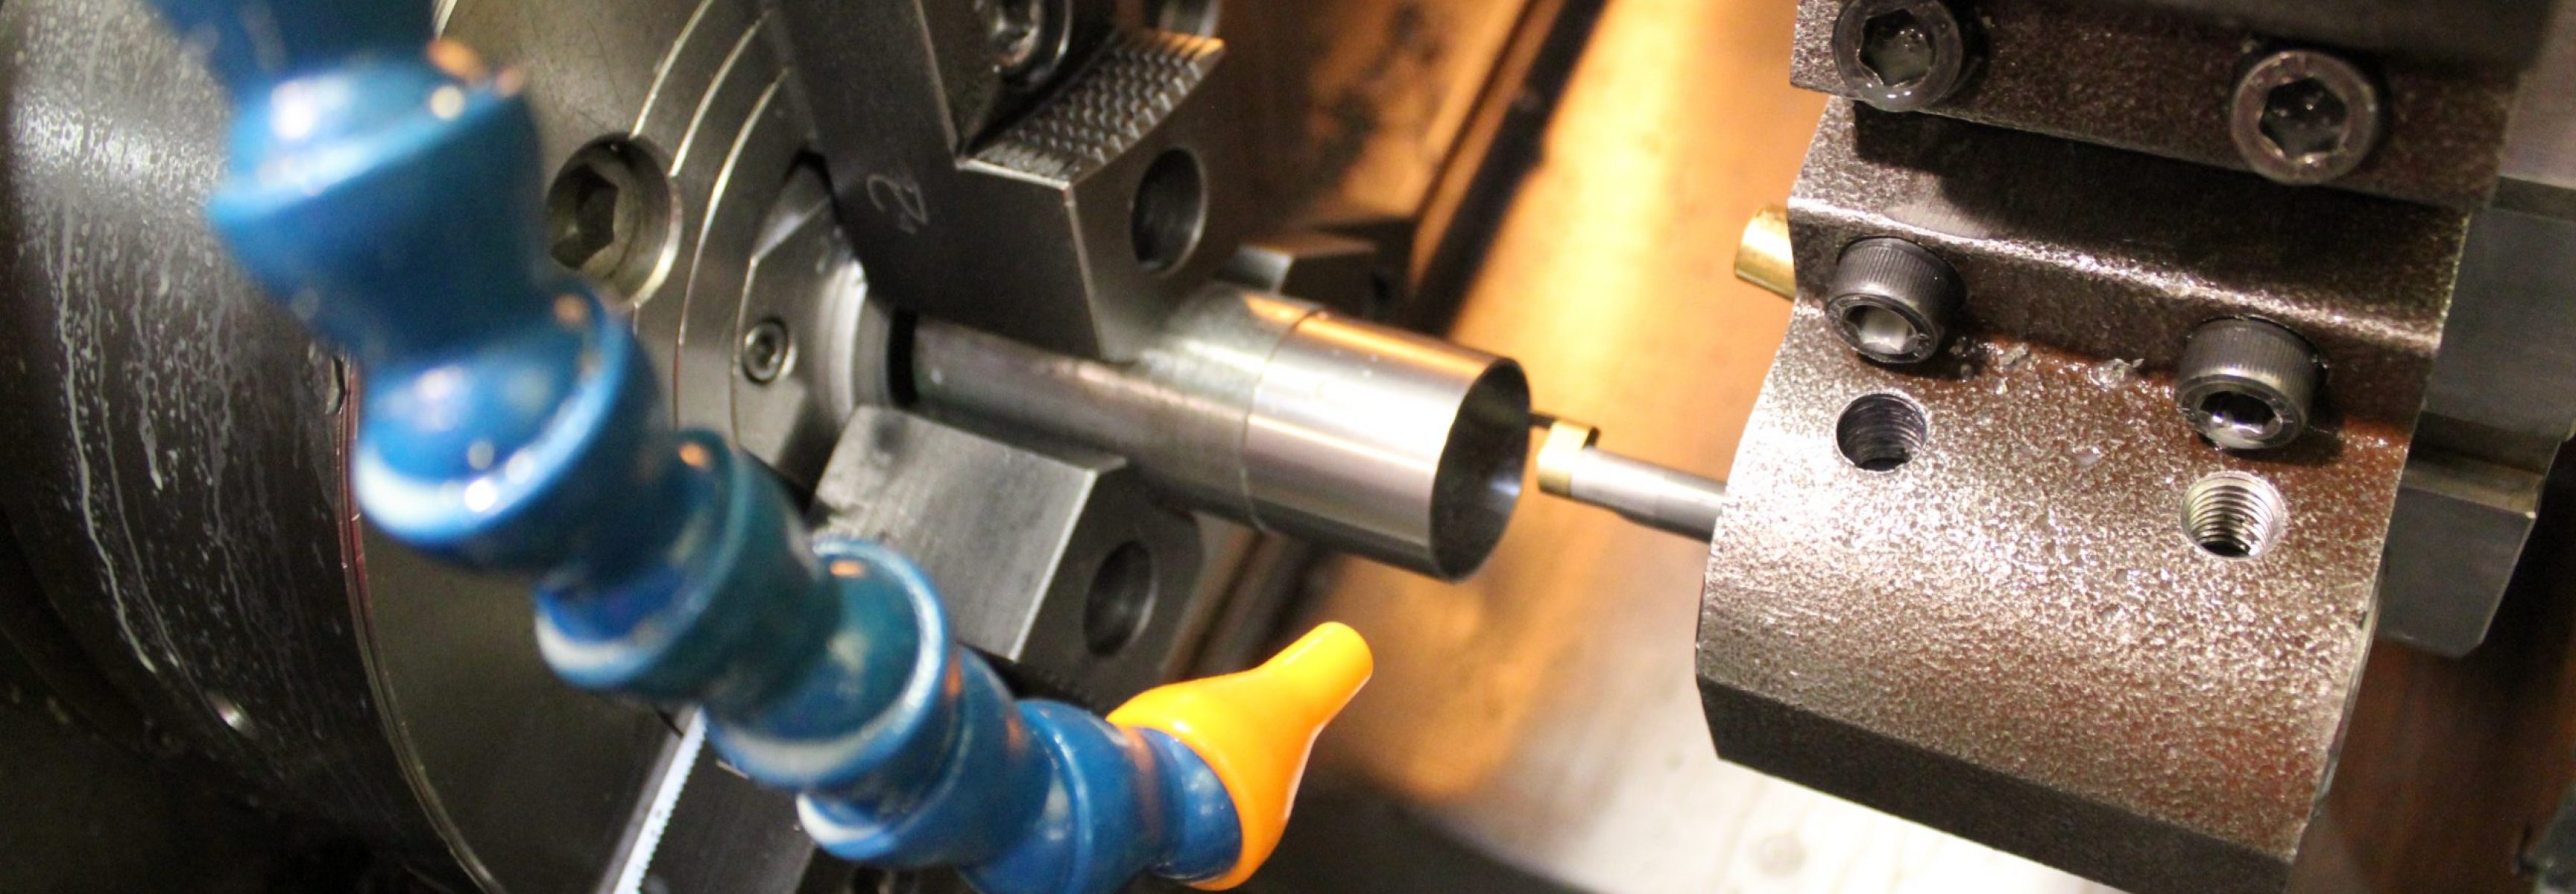 CNC Turning and Milling Machining Services - Precise Machine Company